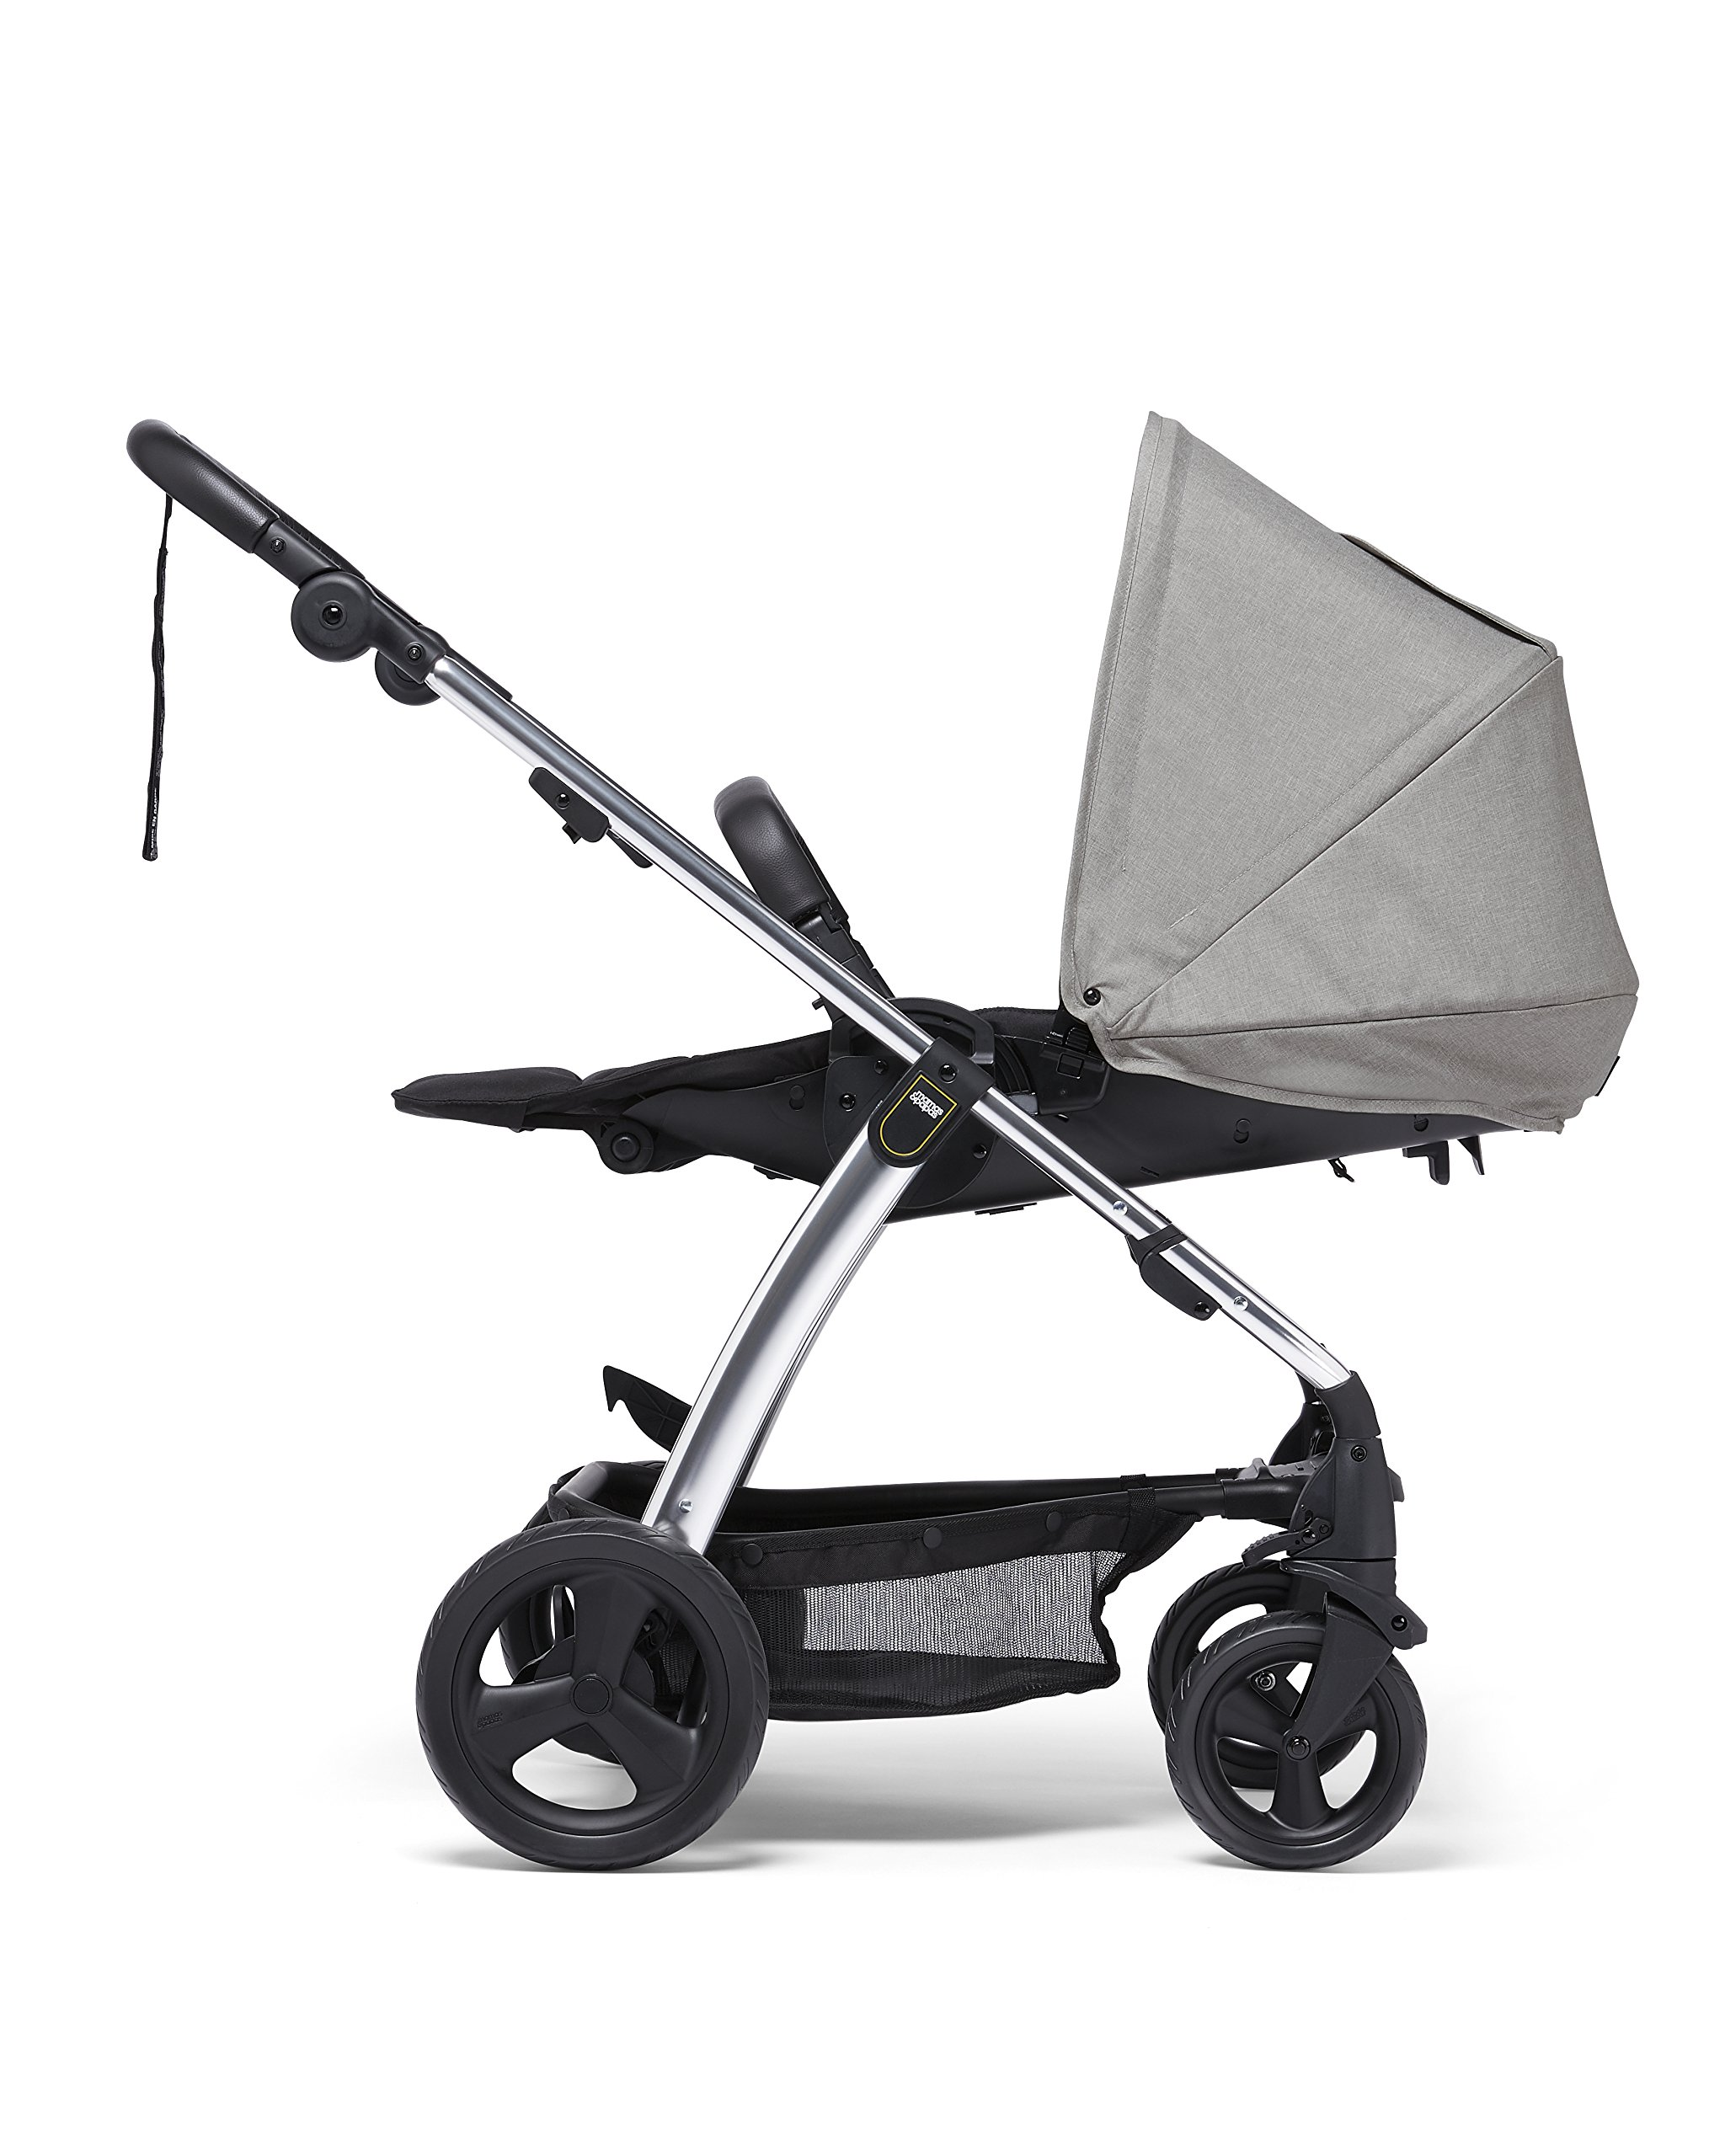 Mamas & Papas Sola² Lightweight Pushchair with Dual Position Seat, Compact Fold & Dual Suspension Wheels - Light Grey Mamas & Papas Great stearability - front and rear suspension wheels ensure a smooth ride for baby's travels. The wheels are also lockable for your peace of mind Large canopy - the large upf 50+ hood protects against harmful rays and a magnetic window lets you check on baby. Attach the included rain cover for drizzly days Dual position - baby can face you or the world to suit them. Adjust the seat to the lie-flat position for a comfortable space for your little one to sleep 4